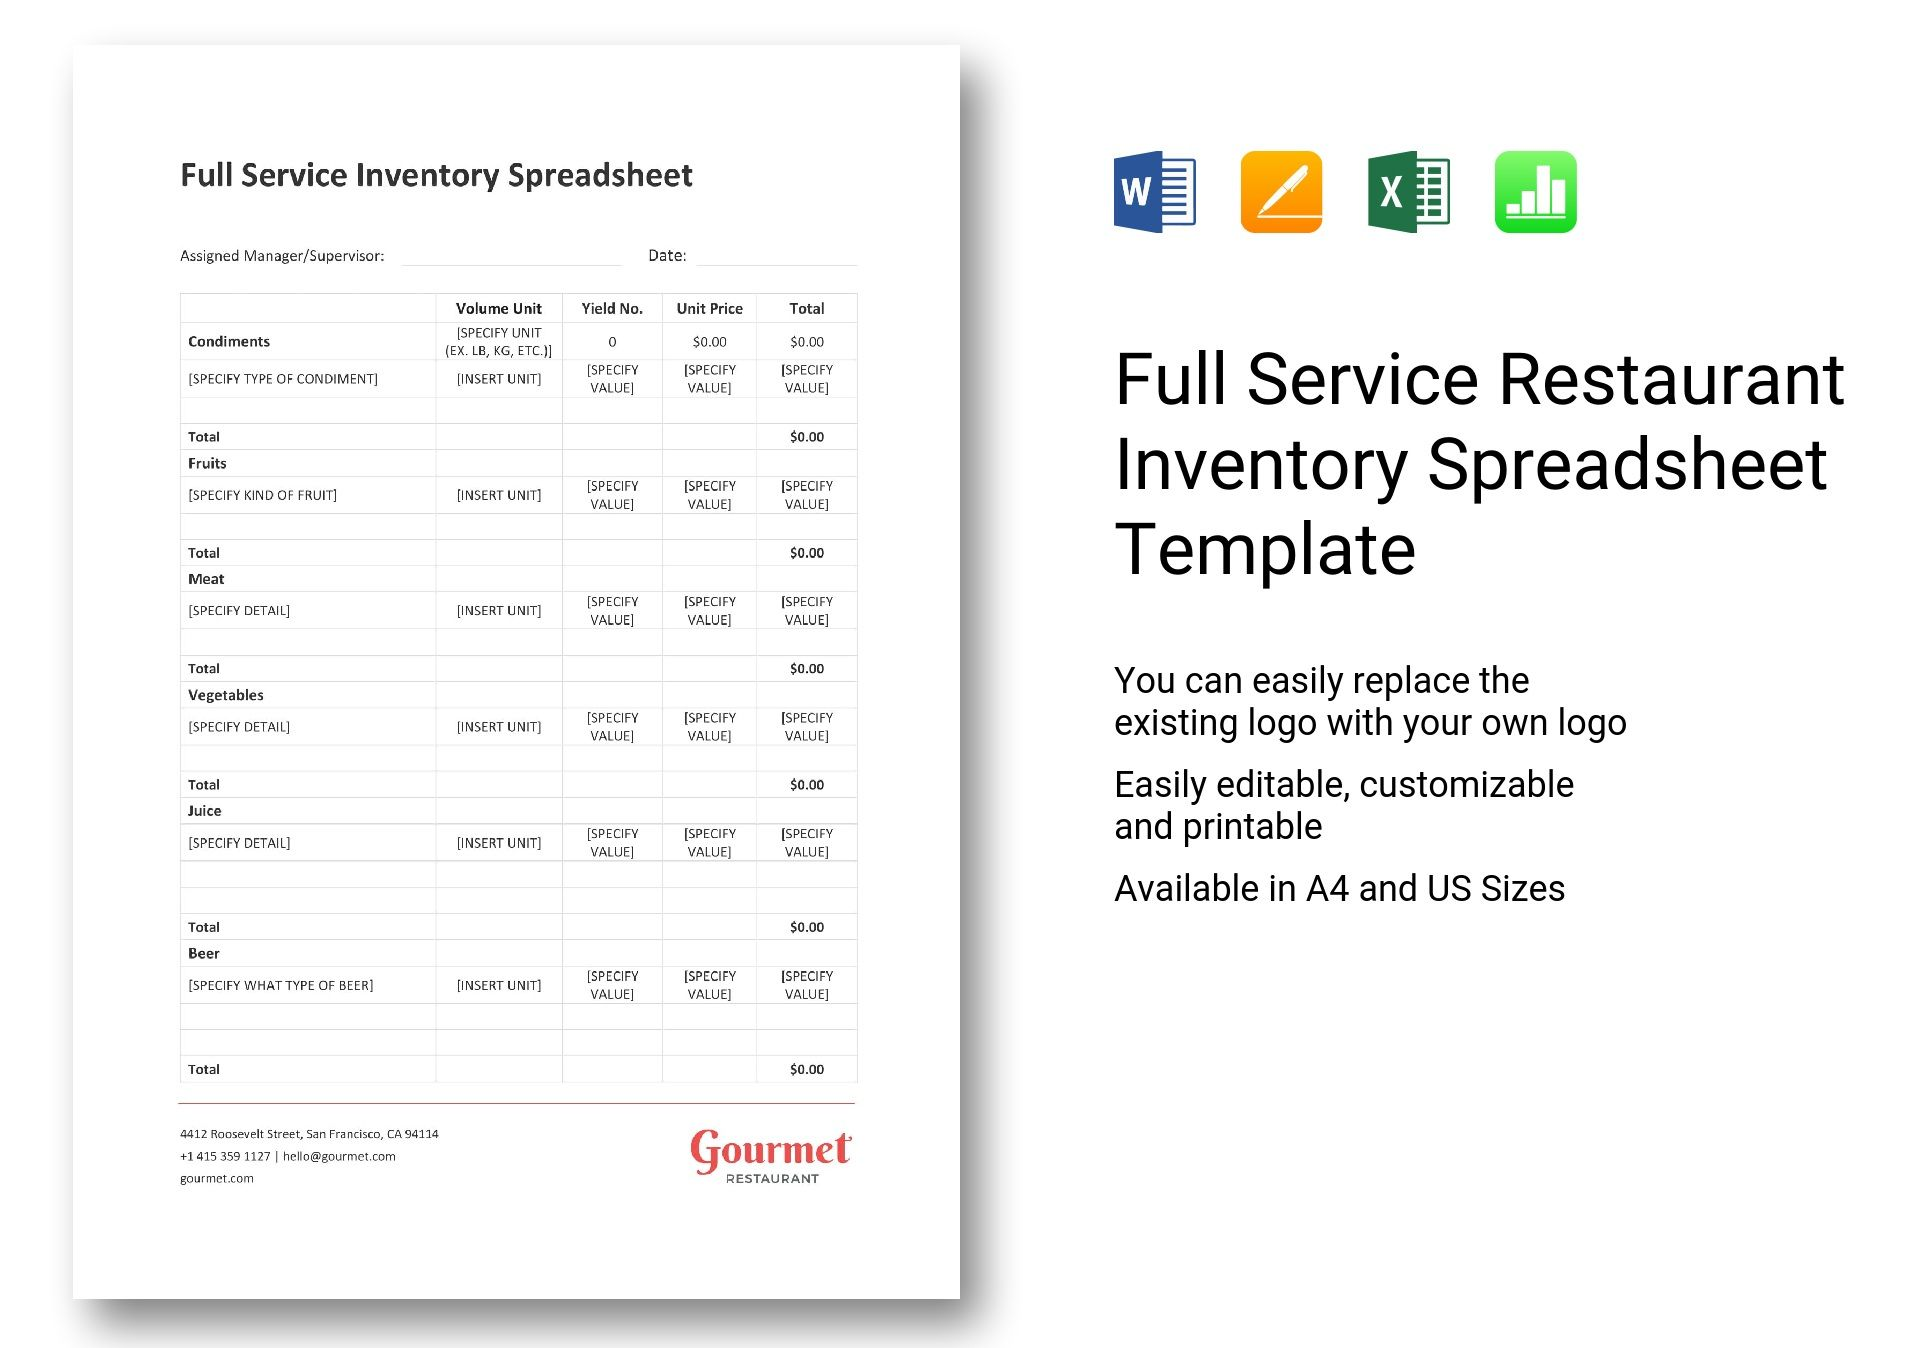 full service restaurant inventory spreadsheet template in word